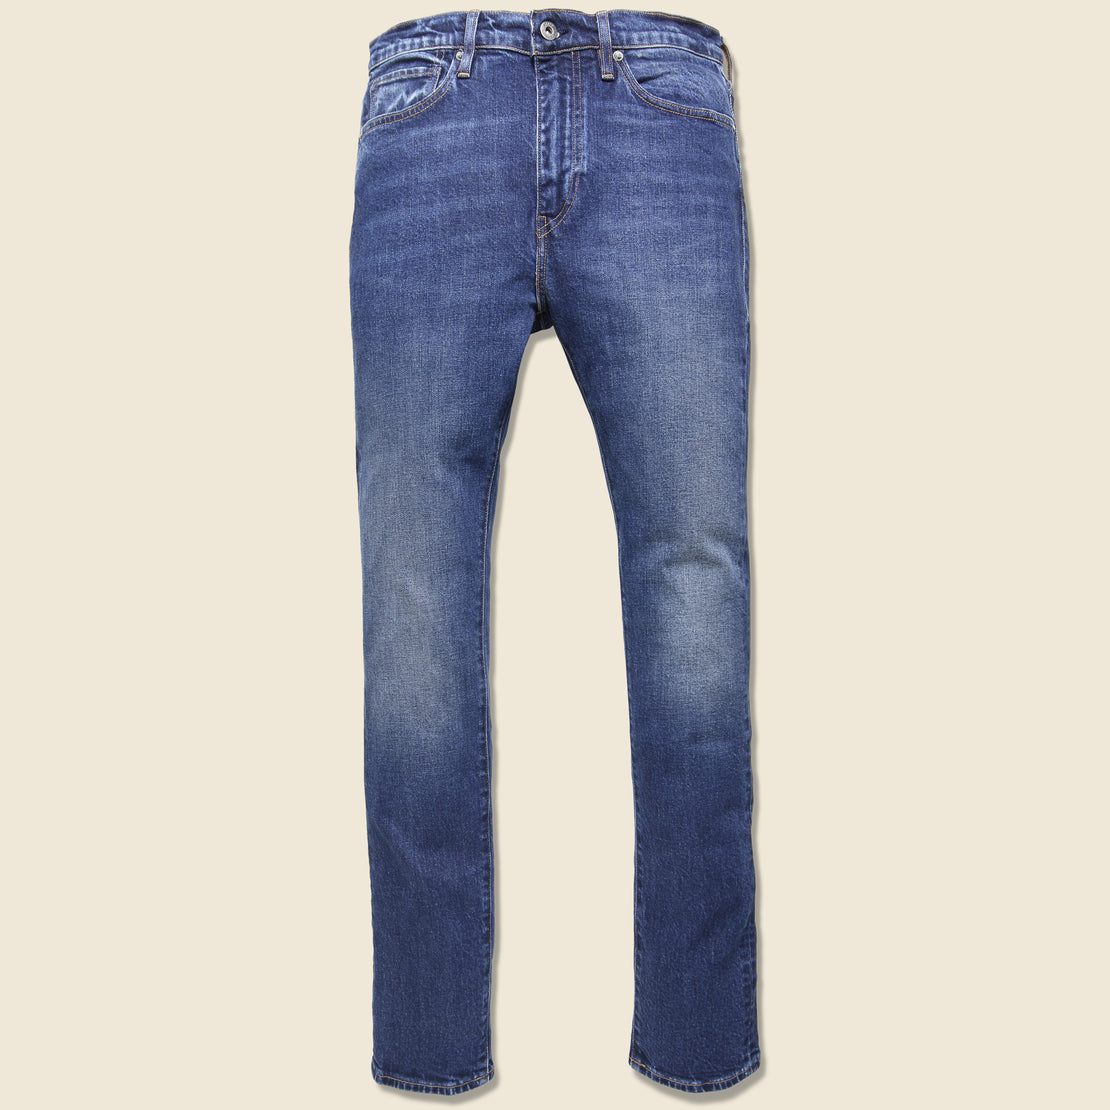 Levis Made & Crafted 510 Jean - Aylin